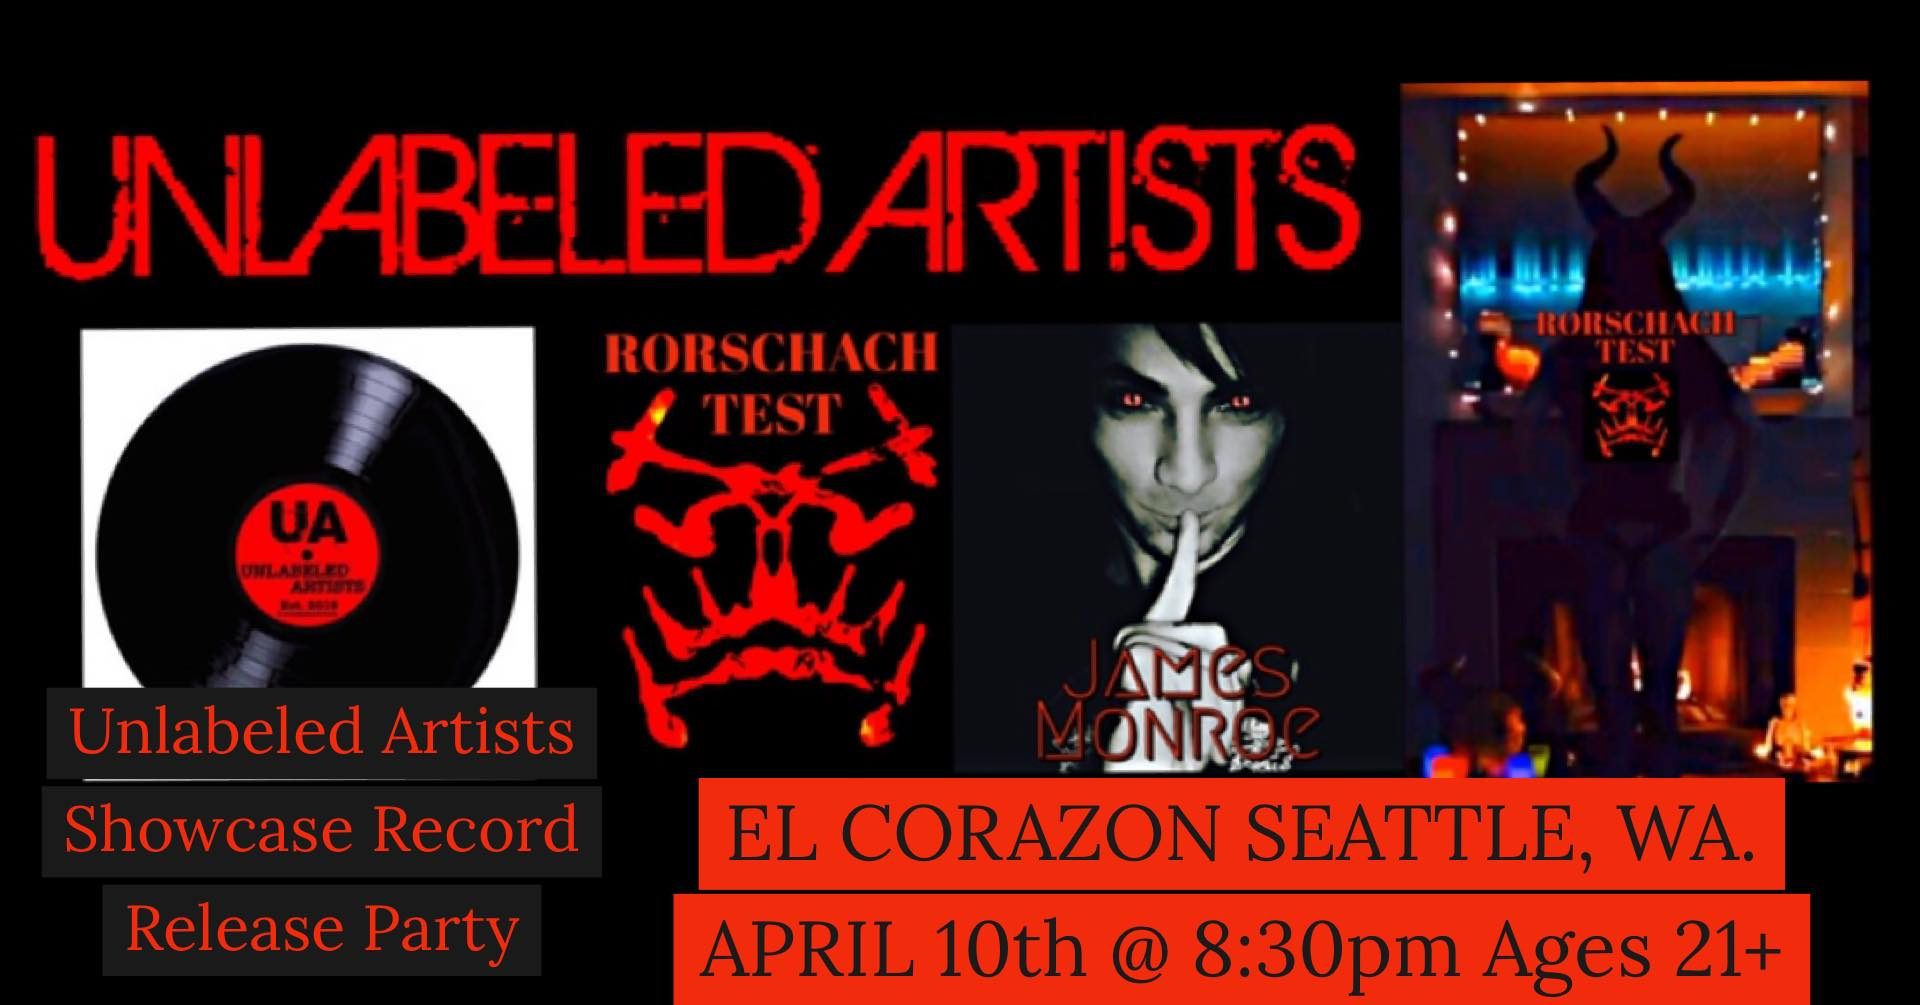 Rorschach Test & James Monroe @ El Corazon Seattle, WA.